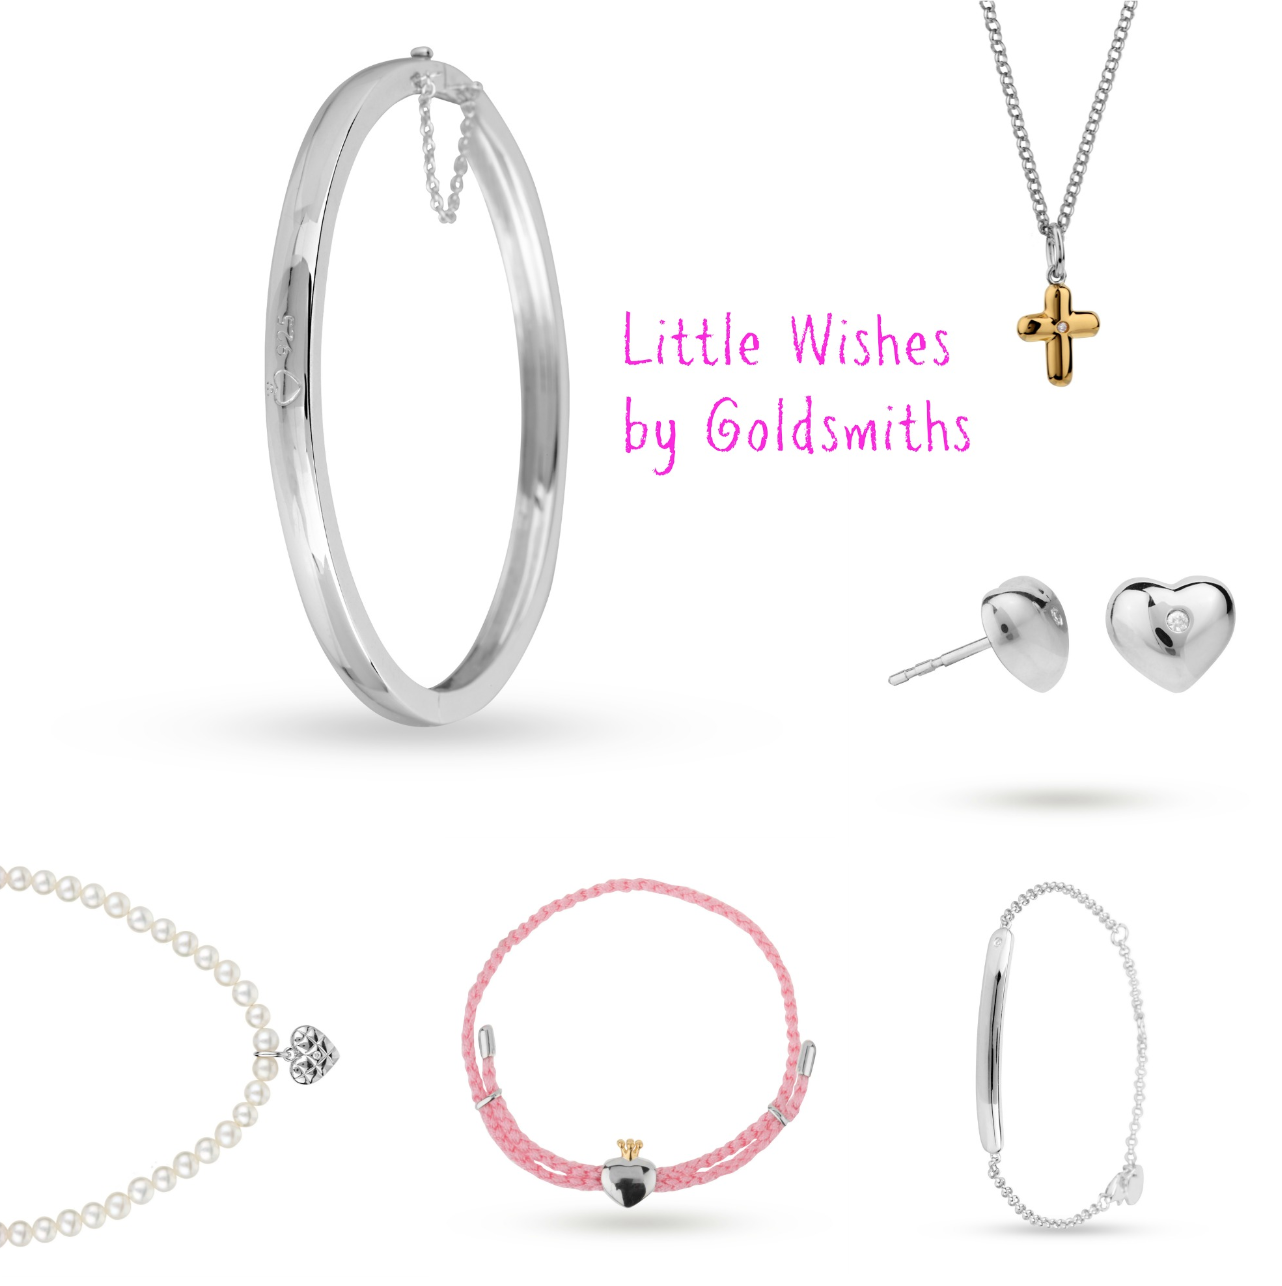 mamasVIb | V. I. BRAND: The new Little Wishes by Goldsmiths jewellery collection for little girls, The new Little Wishes jewellery collection for little girls | goldsmiths | little wishes | jewellery for little gils | new jewellery for children | first birthday gift ideas | sterling silver jewellery | bridesmaid gift ideas | easter gifts | charm bracelet | necklace | earrings | girly gifts | pink packaging | mamasVIb | miss Marnie | bonita Turner | now magazine | stylist | blog | mummy blogger | goldsmiths jewellery